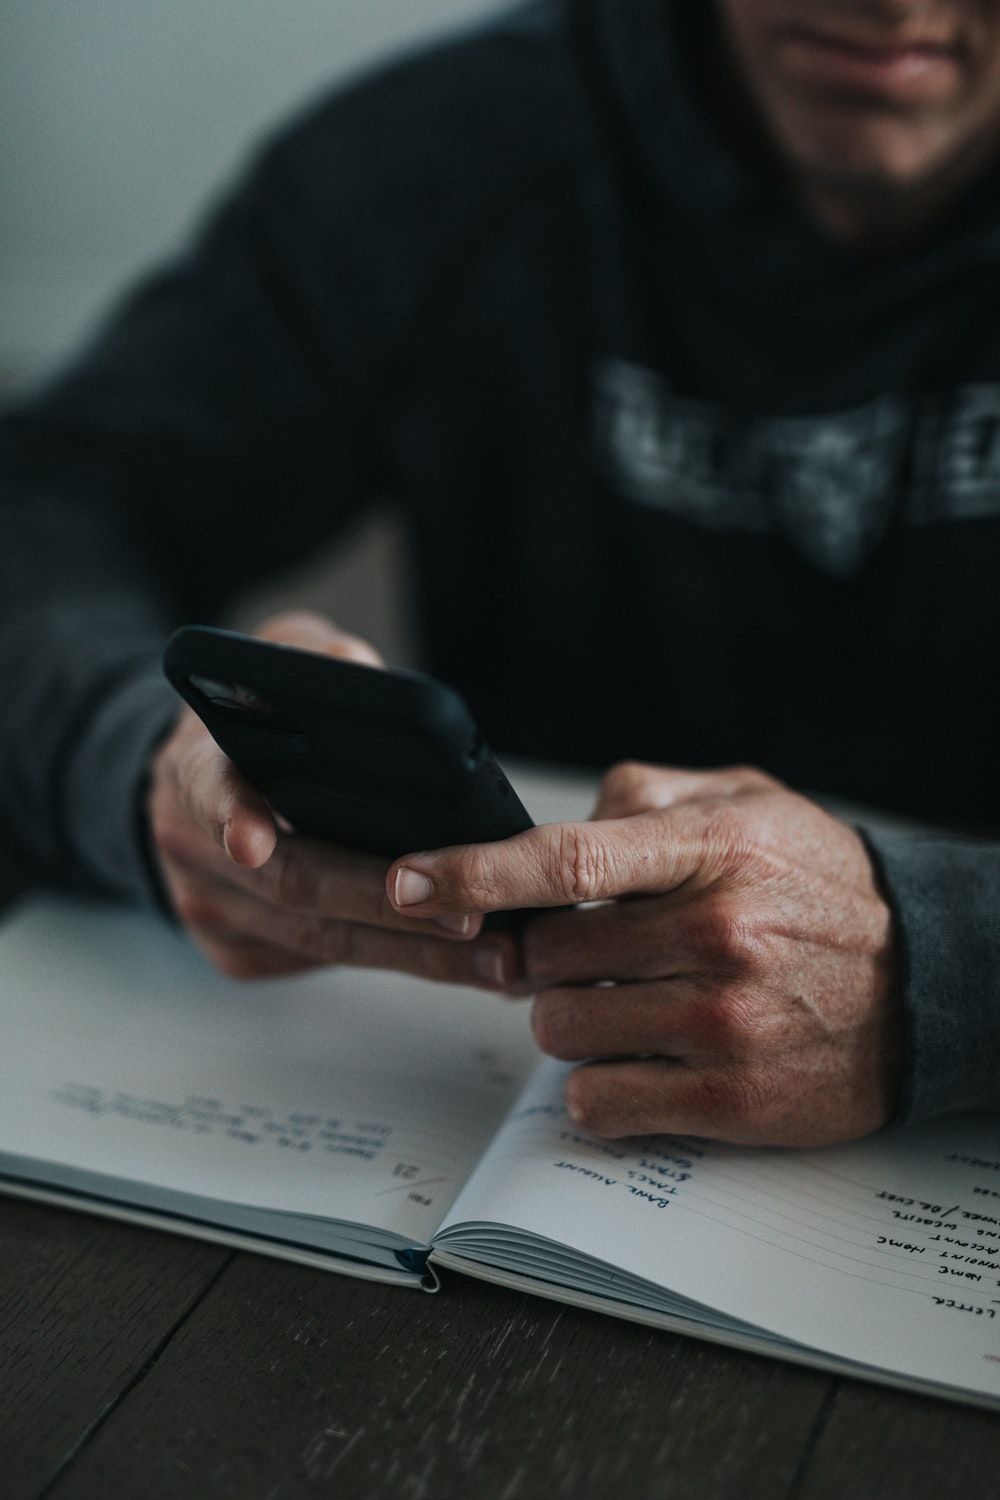 person holding black smartphone on white paper